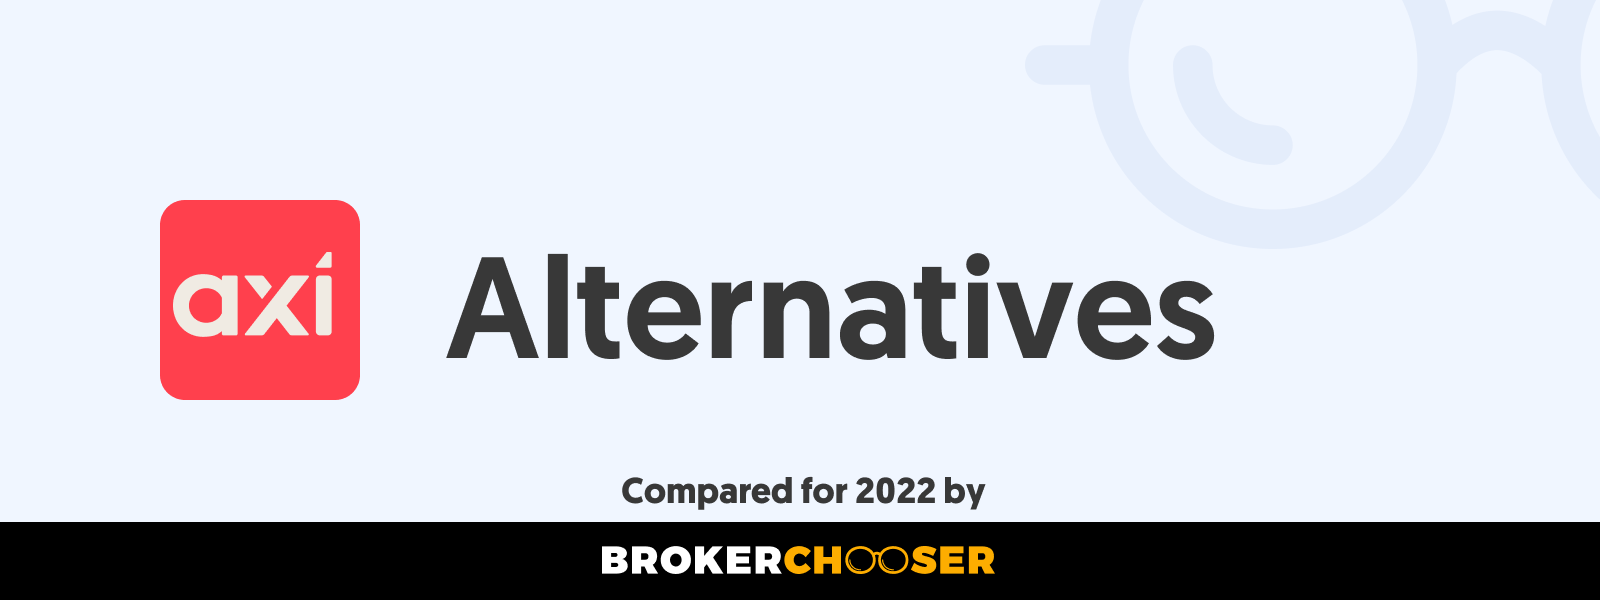 AxiTrader Alternatives